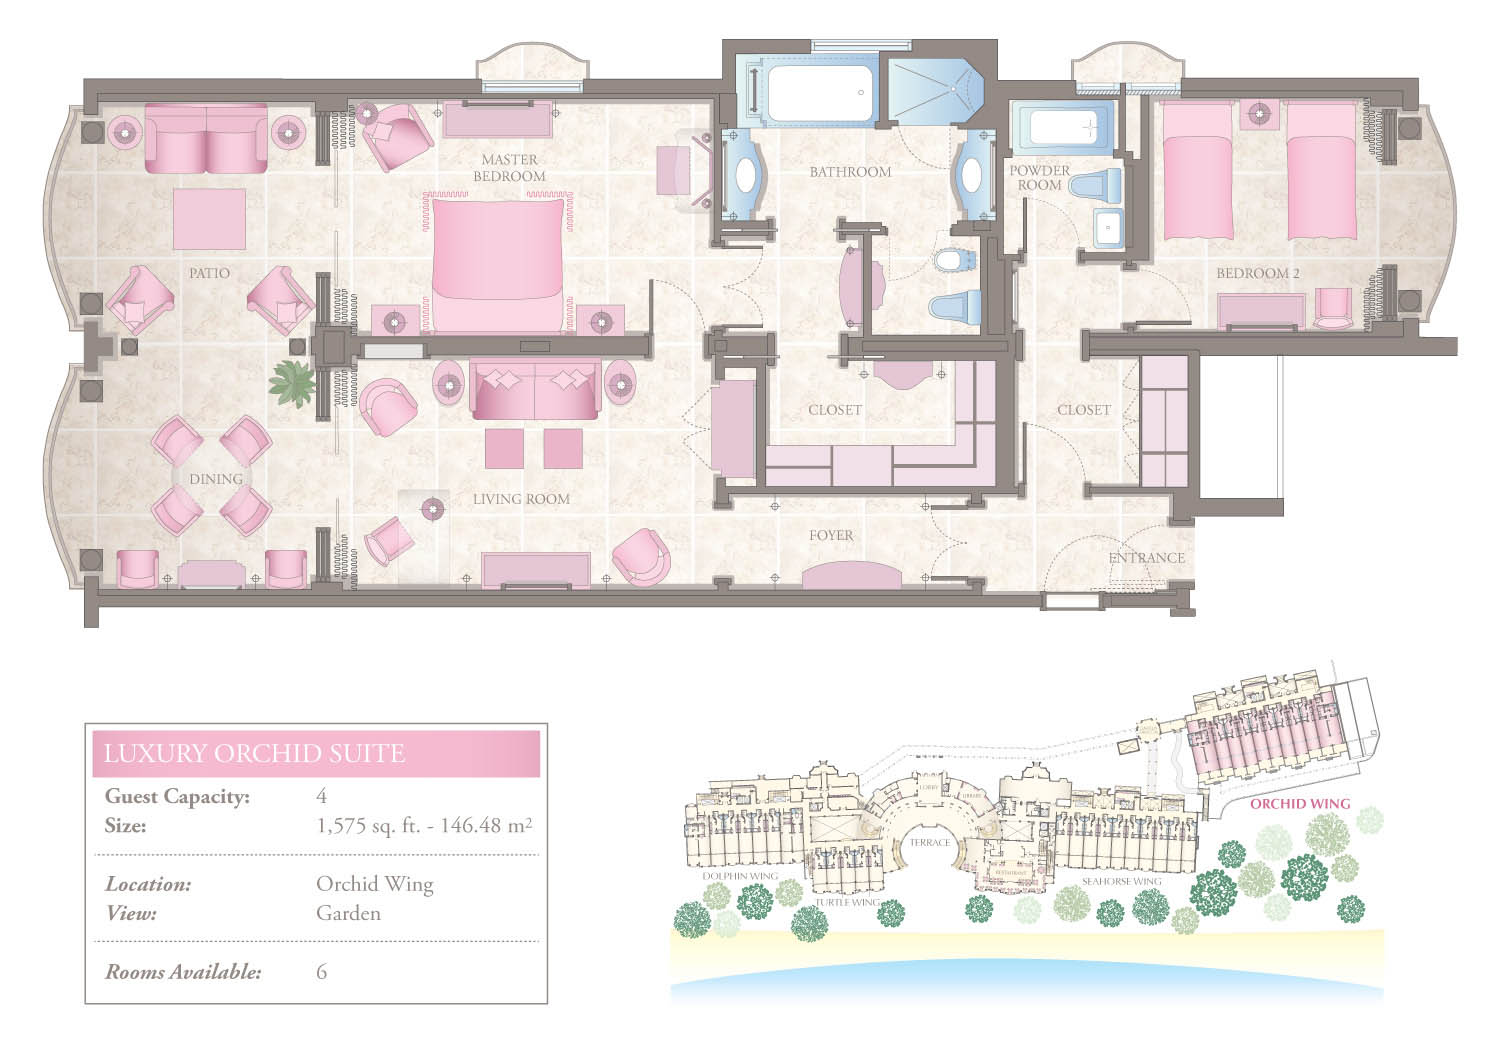 Luxury Orchid Suites Floorplan Barbados